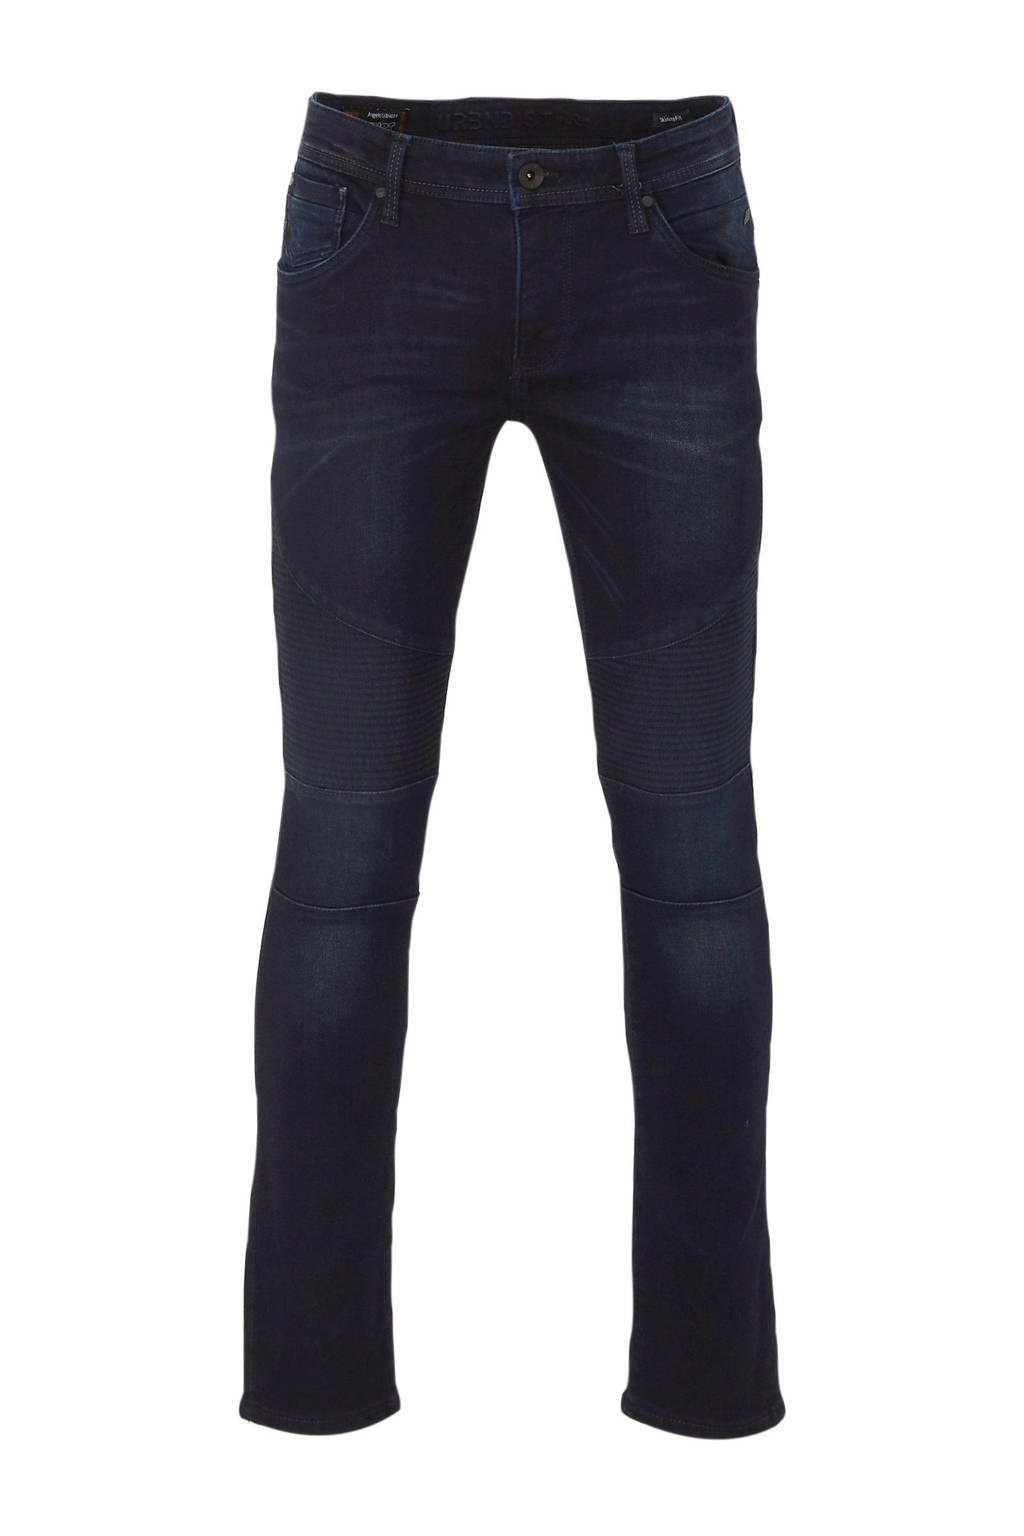 C&A Angelo Litrico skinny jeans donkerblauw, Donkerblauw